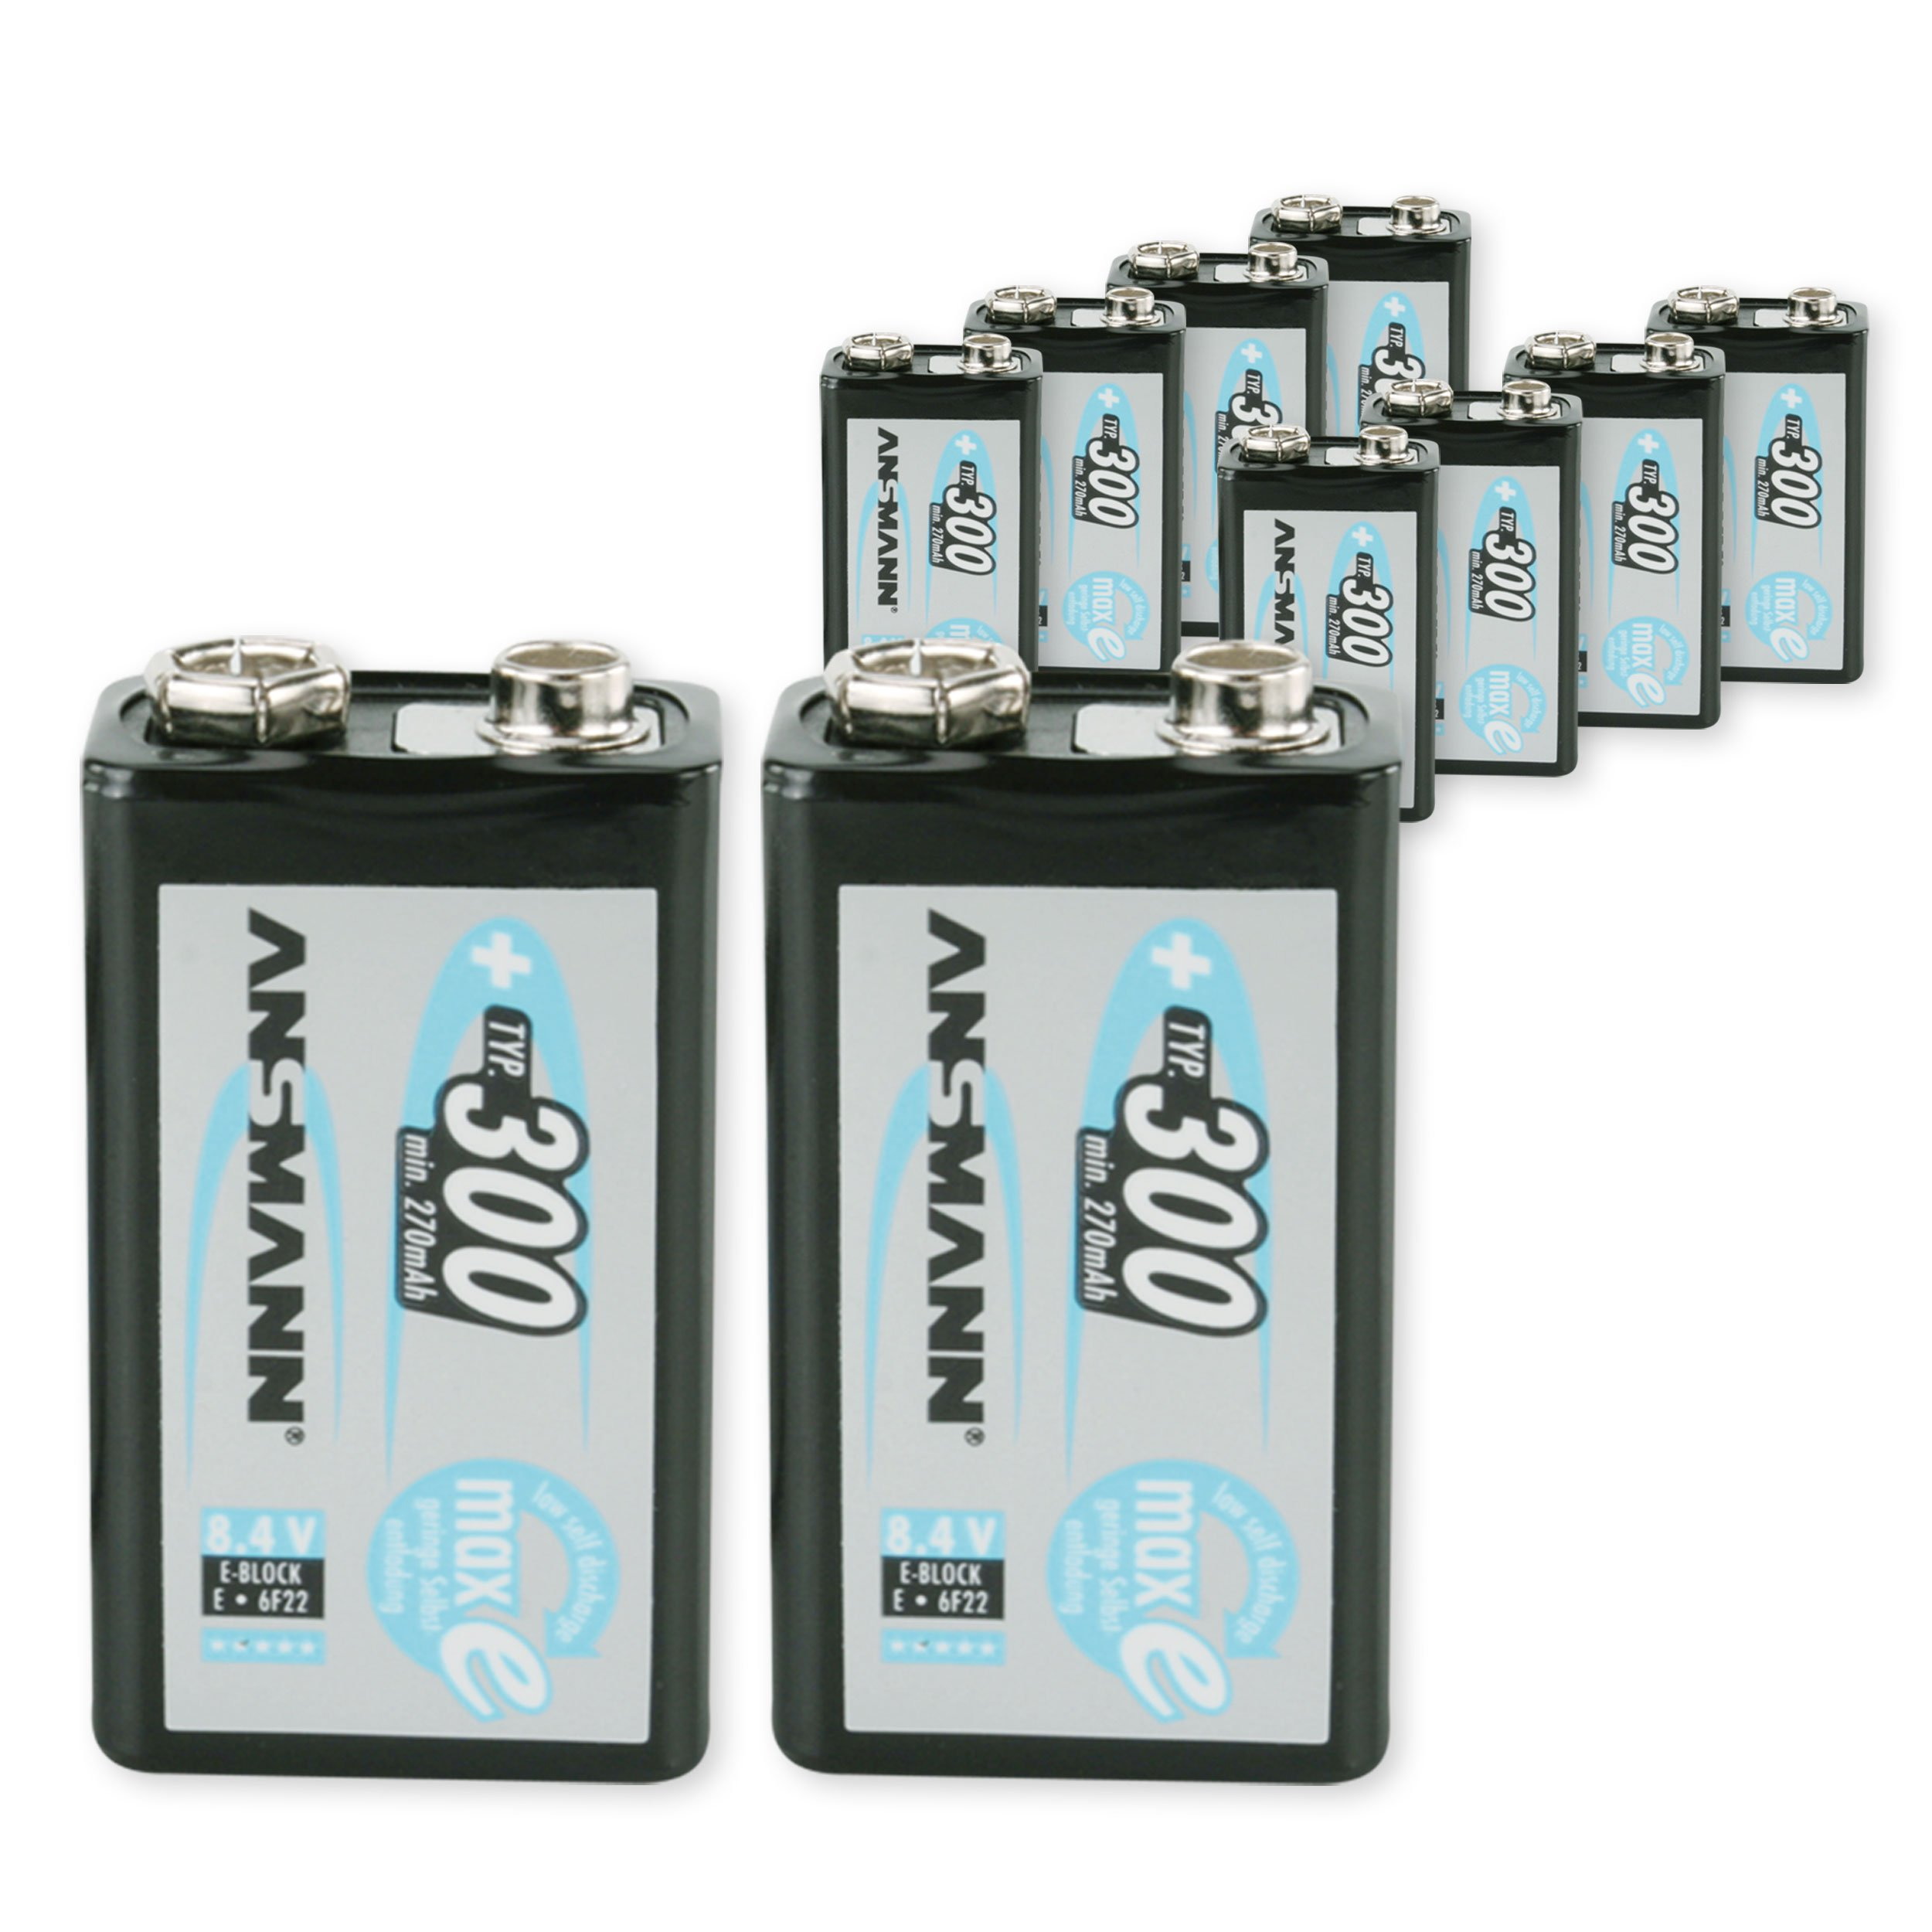 ANSMANN 9V Rechargeable Batteries 300mAh pre-Charged Low Self-Discharge (LSD) NiMH 9 Volt Battery 9V Battery (10-Pack) by Ansmann